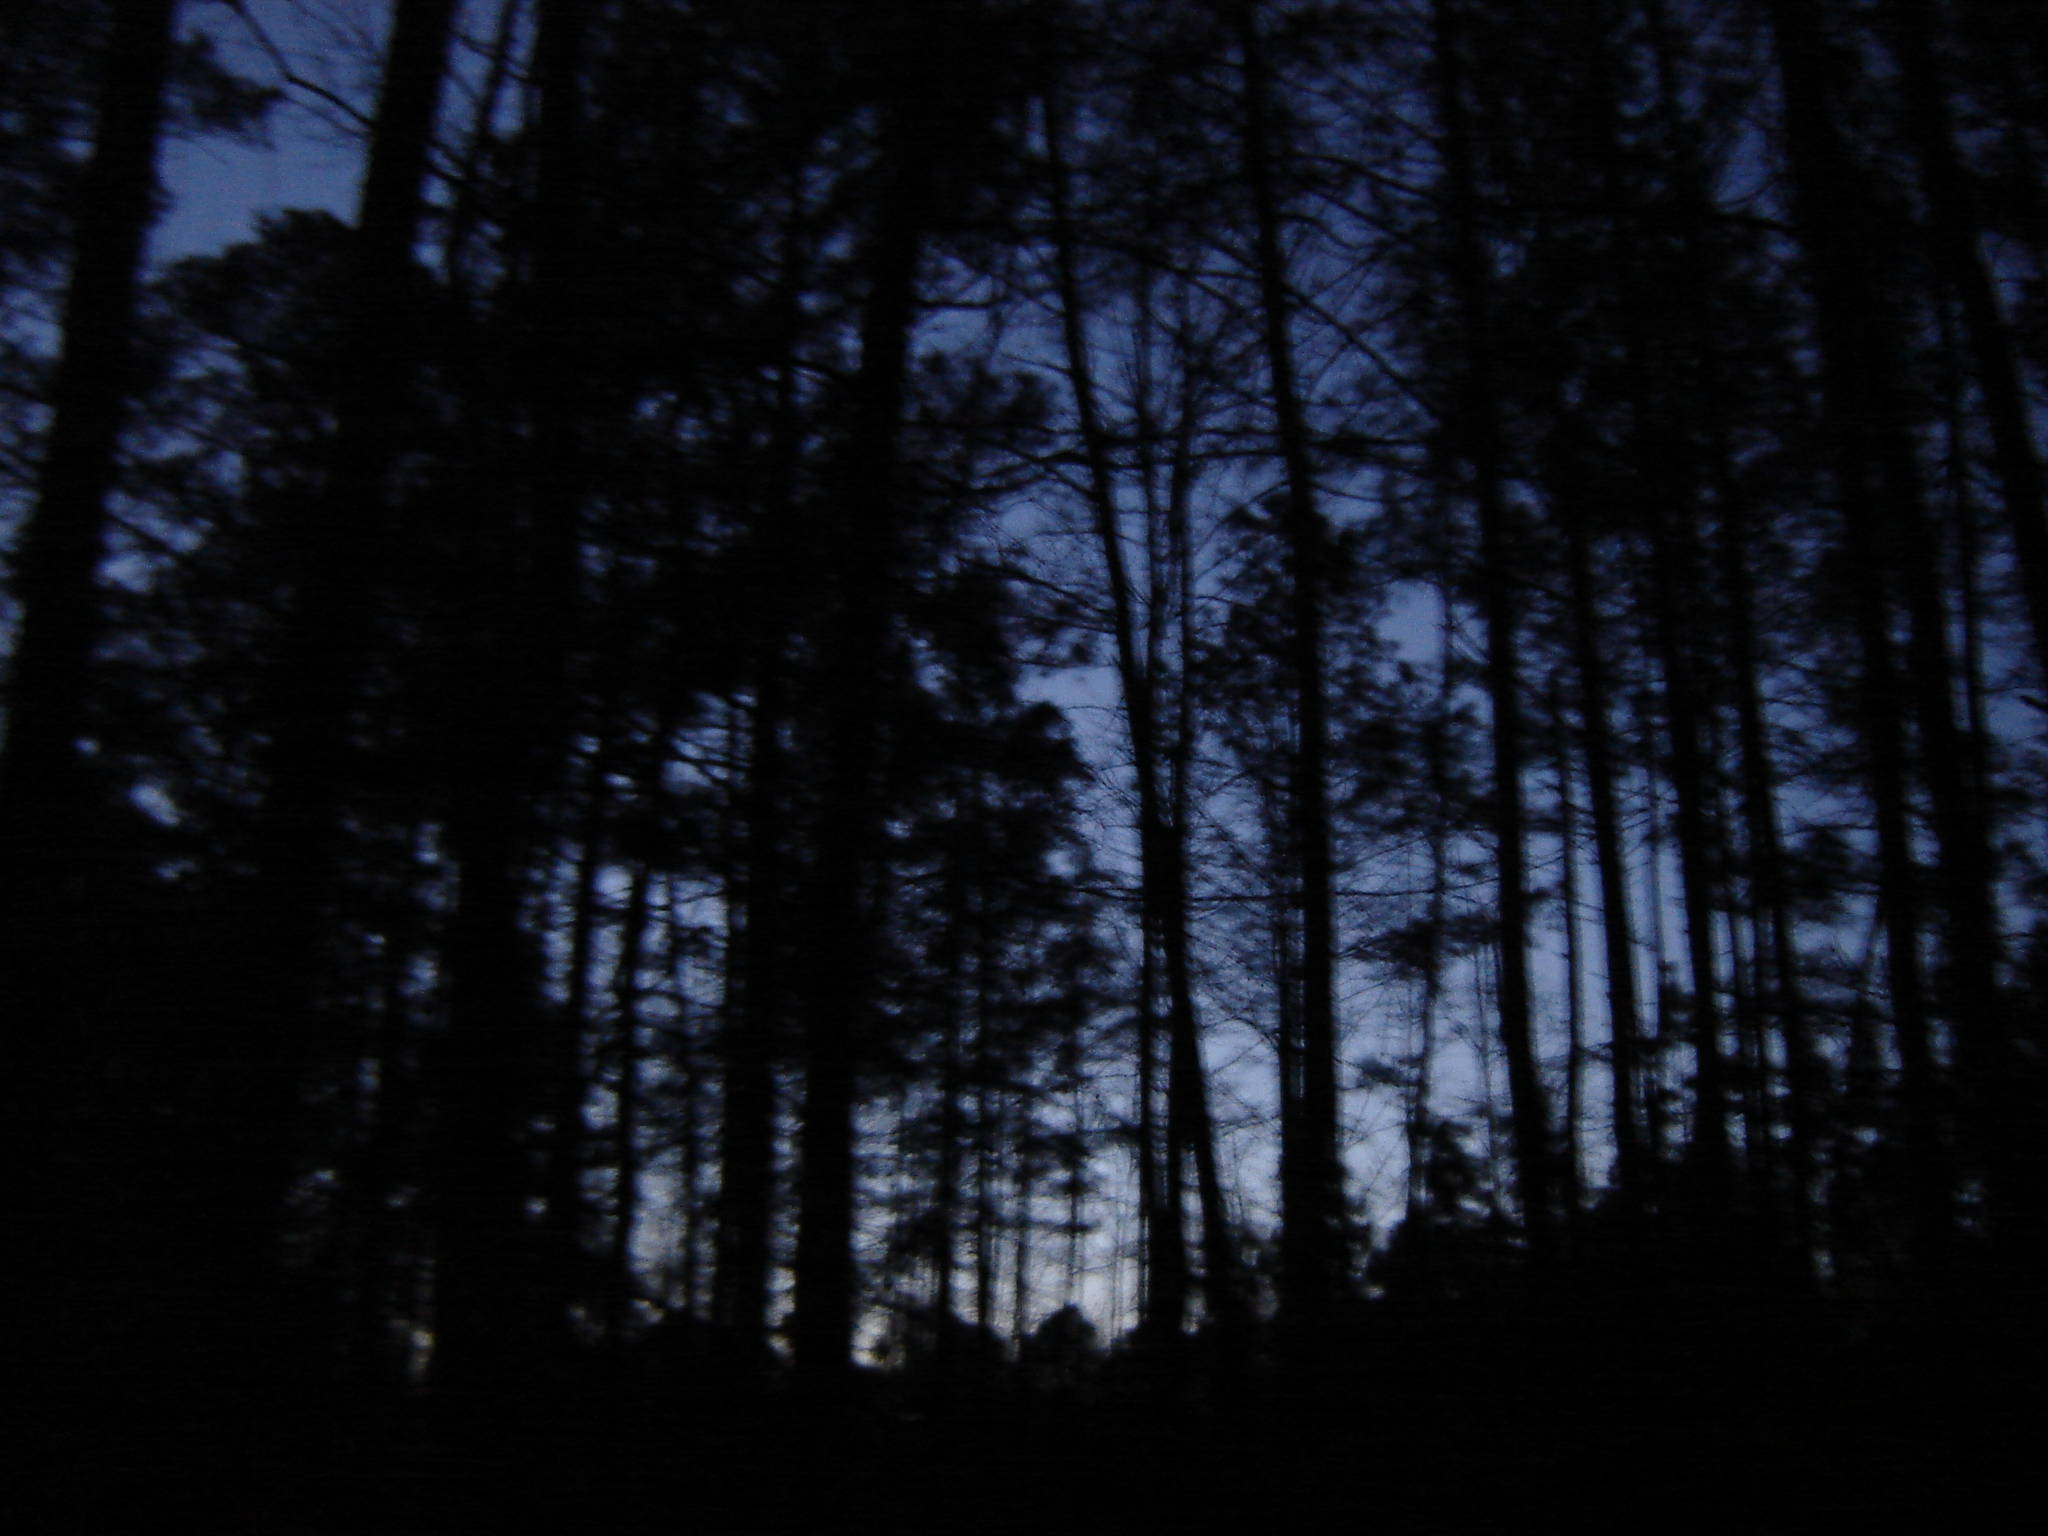 essay a forest at night time